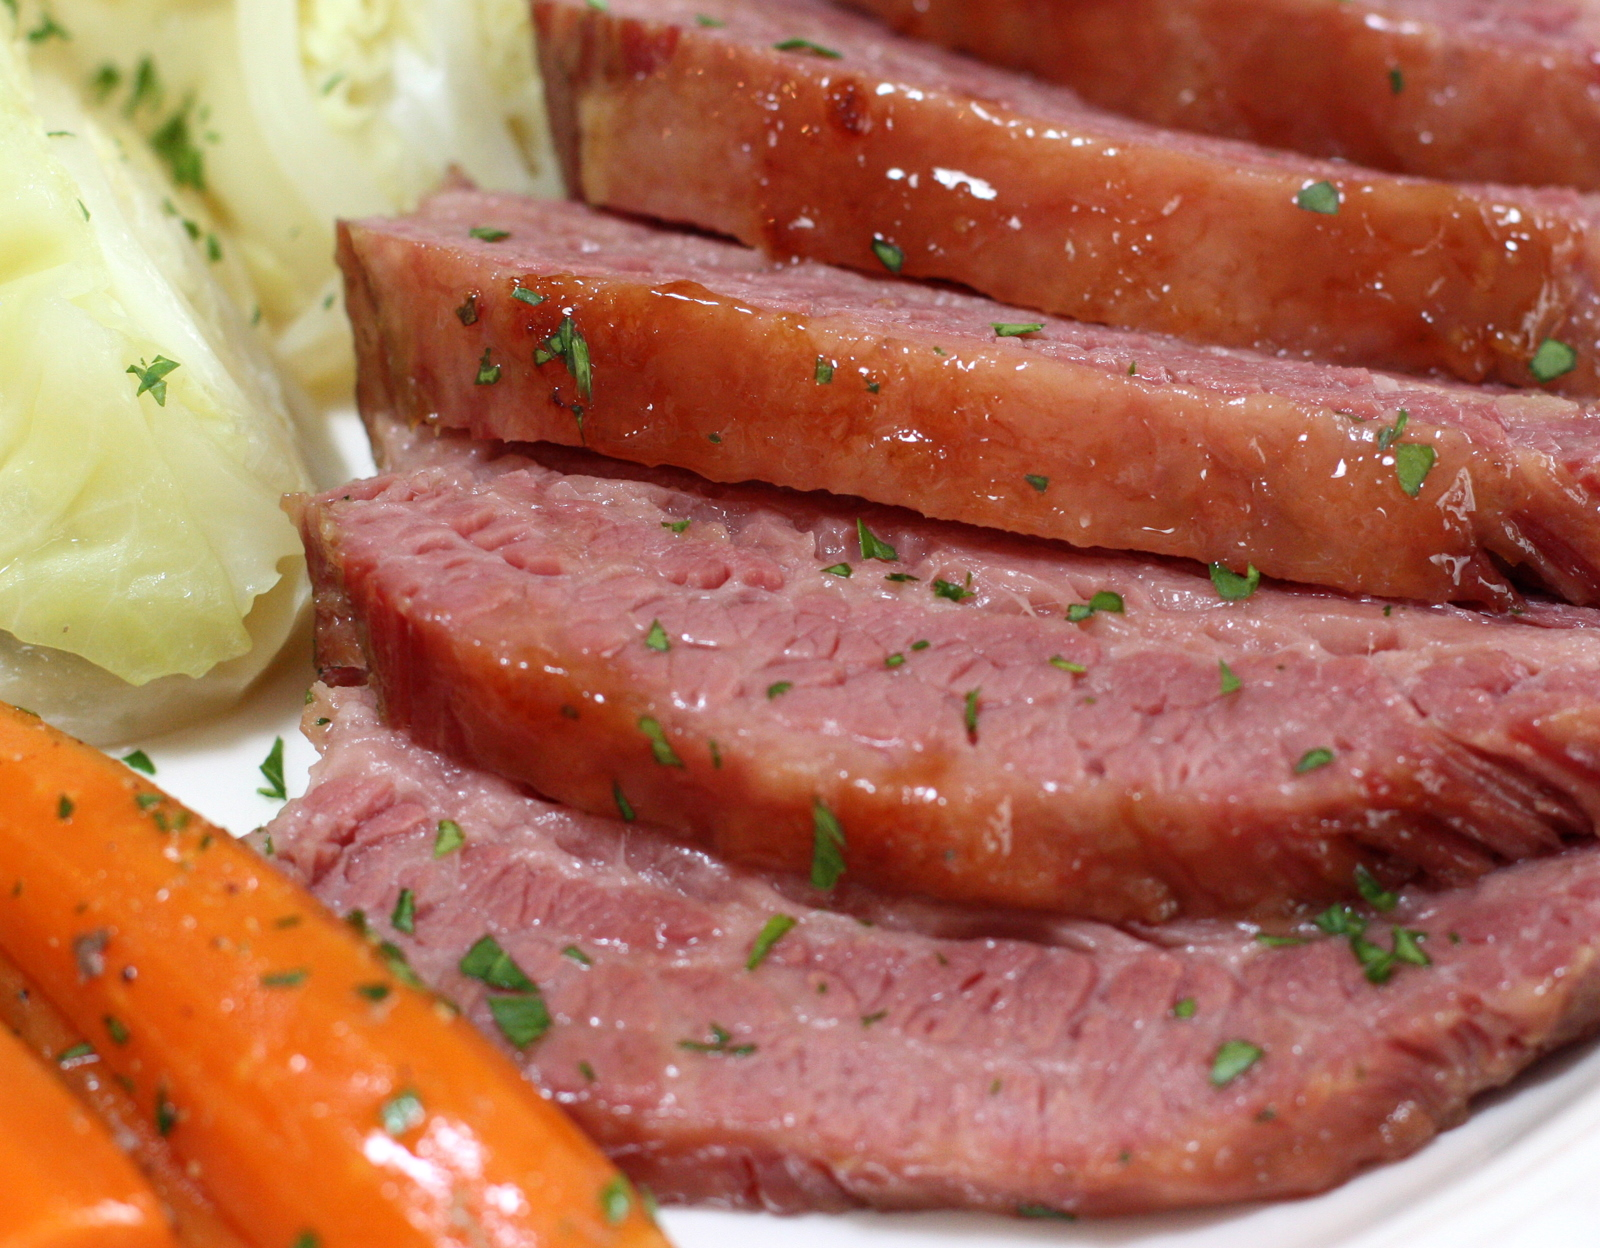 Corned Beef And Cabbage With Horseradish Cream Sauce Recipes ...